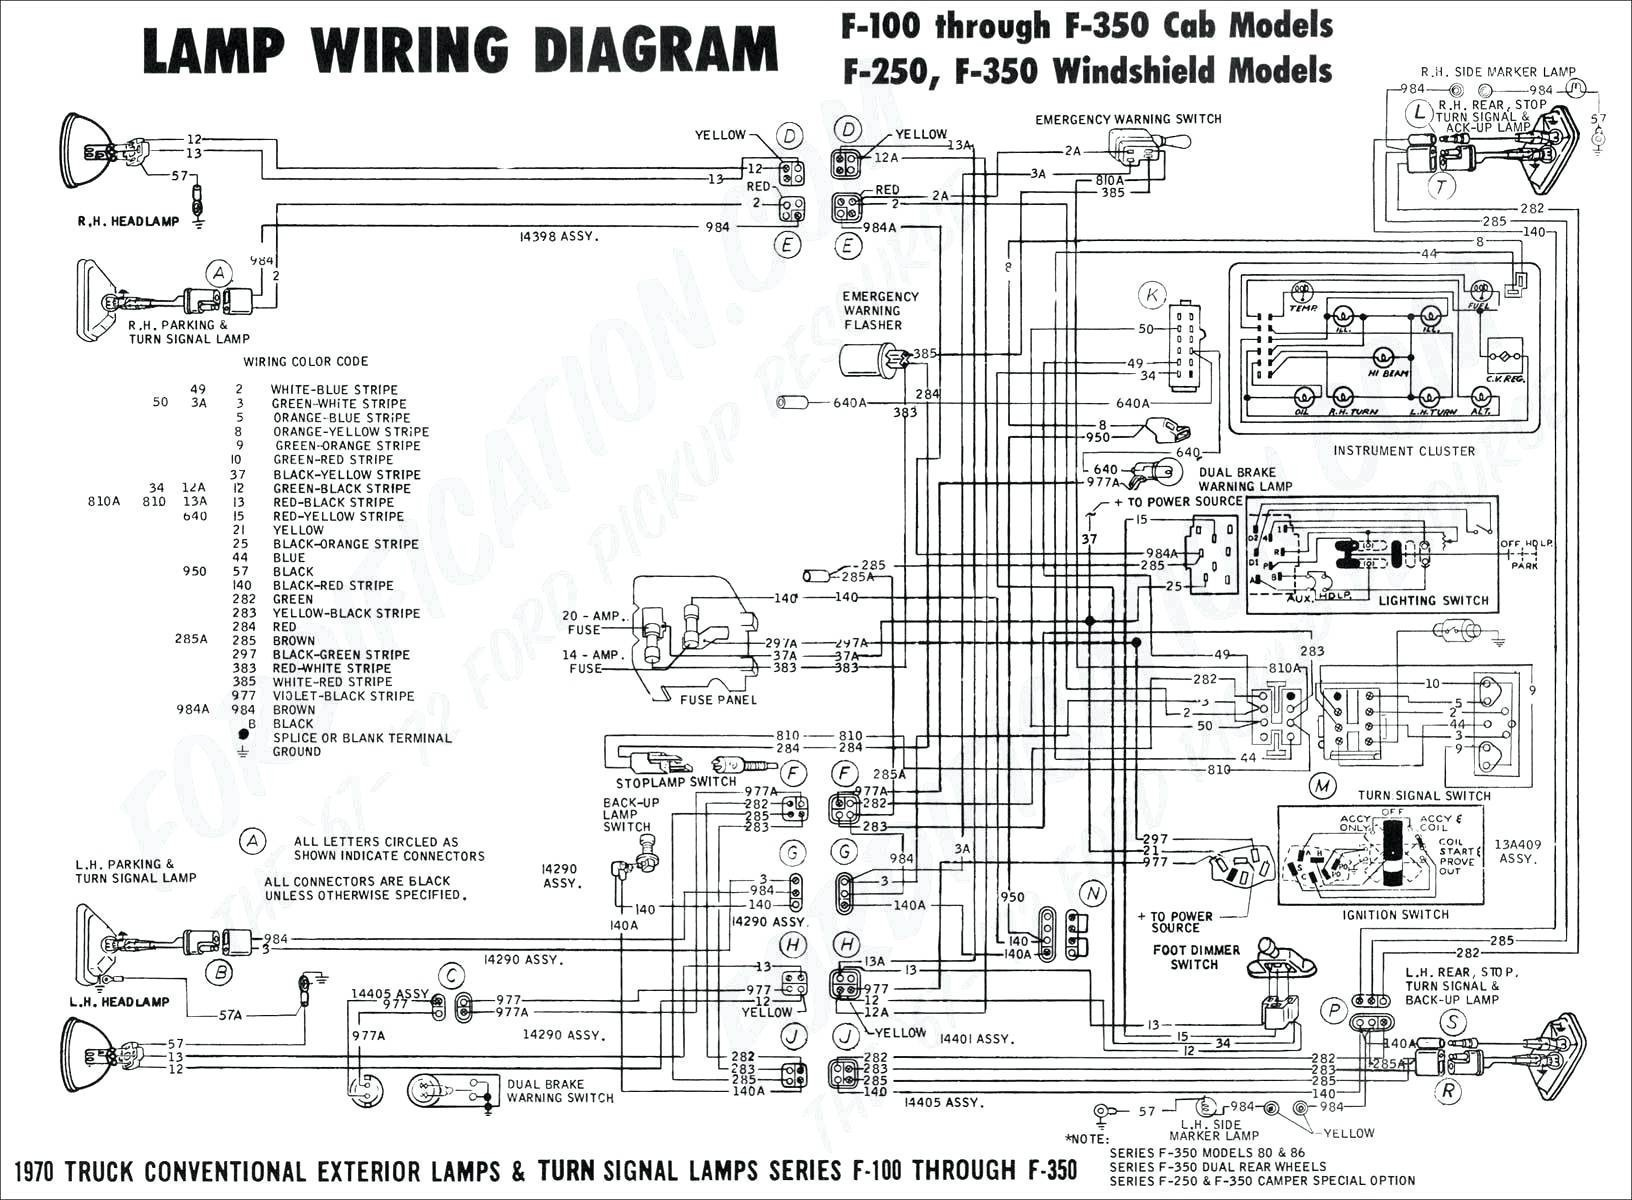 Toyota Corolla Wiring Diagram Valid Wiring Diagram Ecu Great Corolla Fresh Car Ecu Wiring Diagram